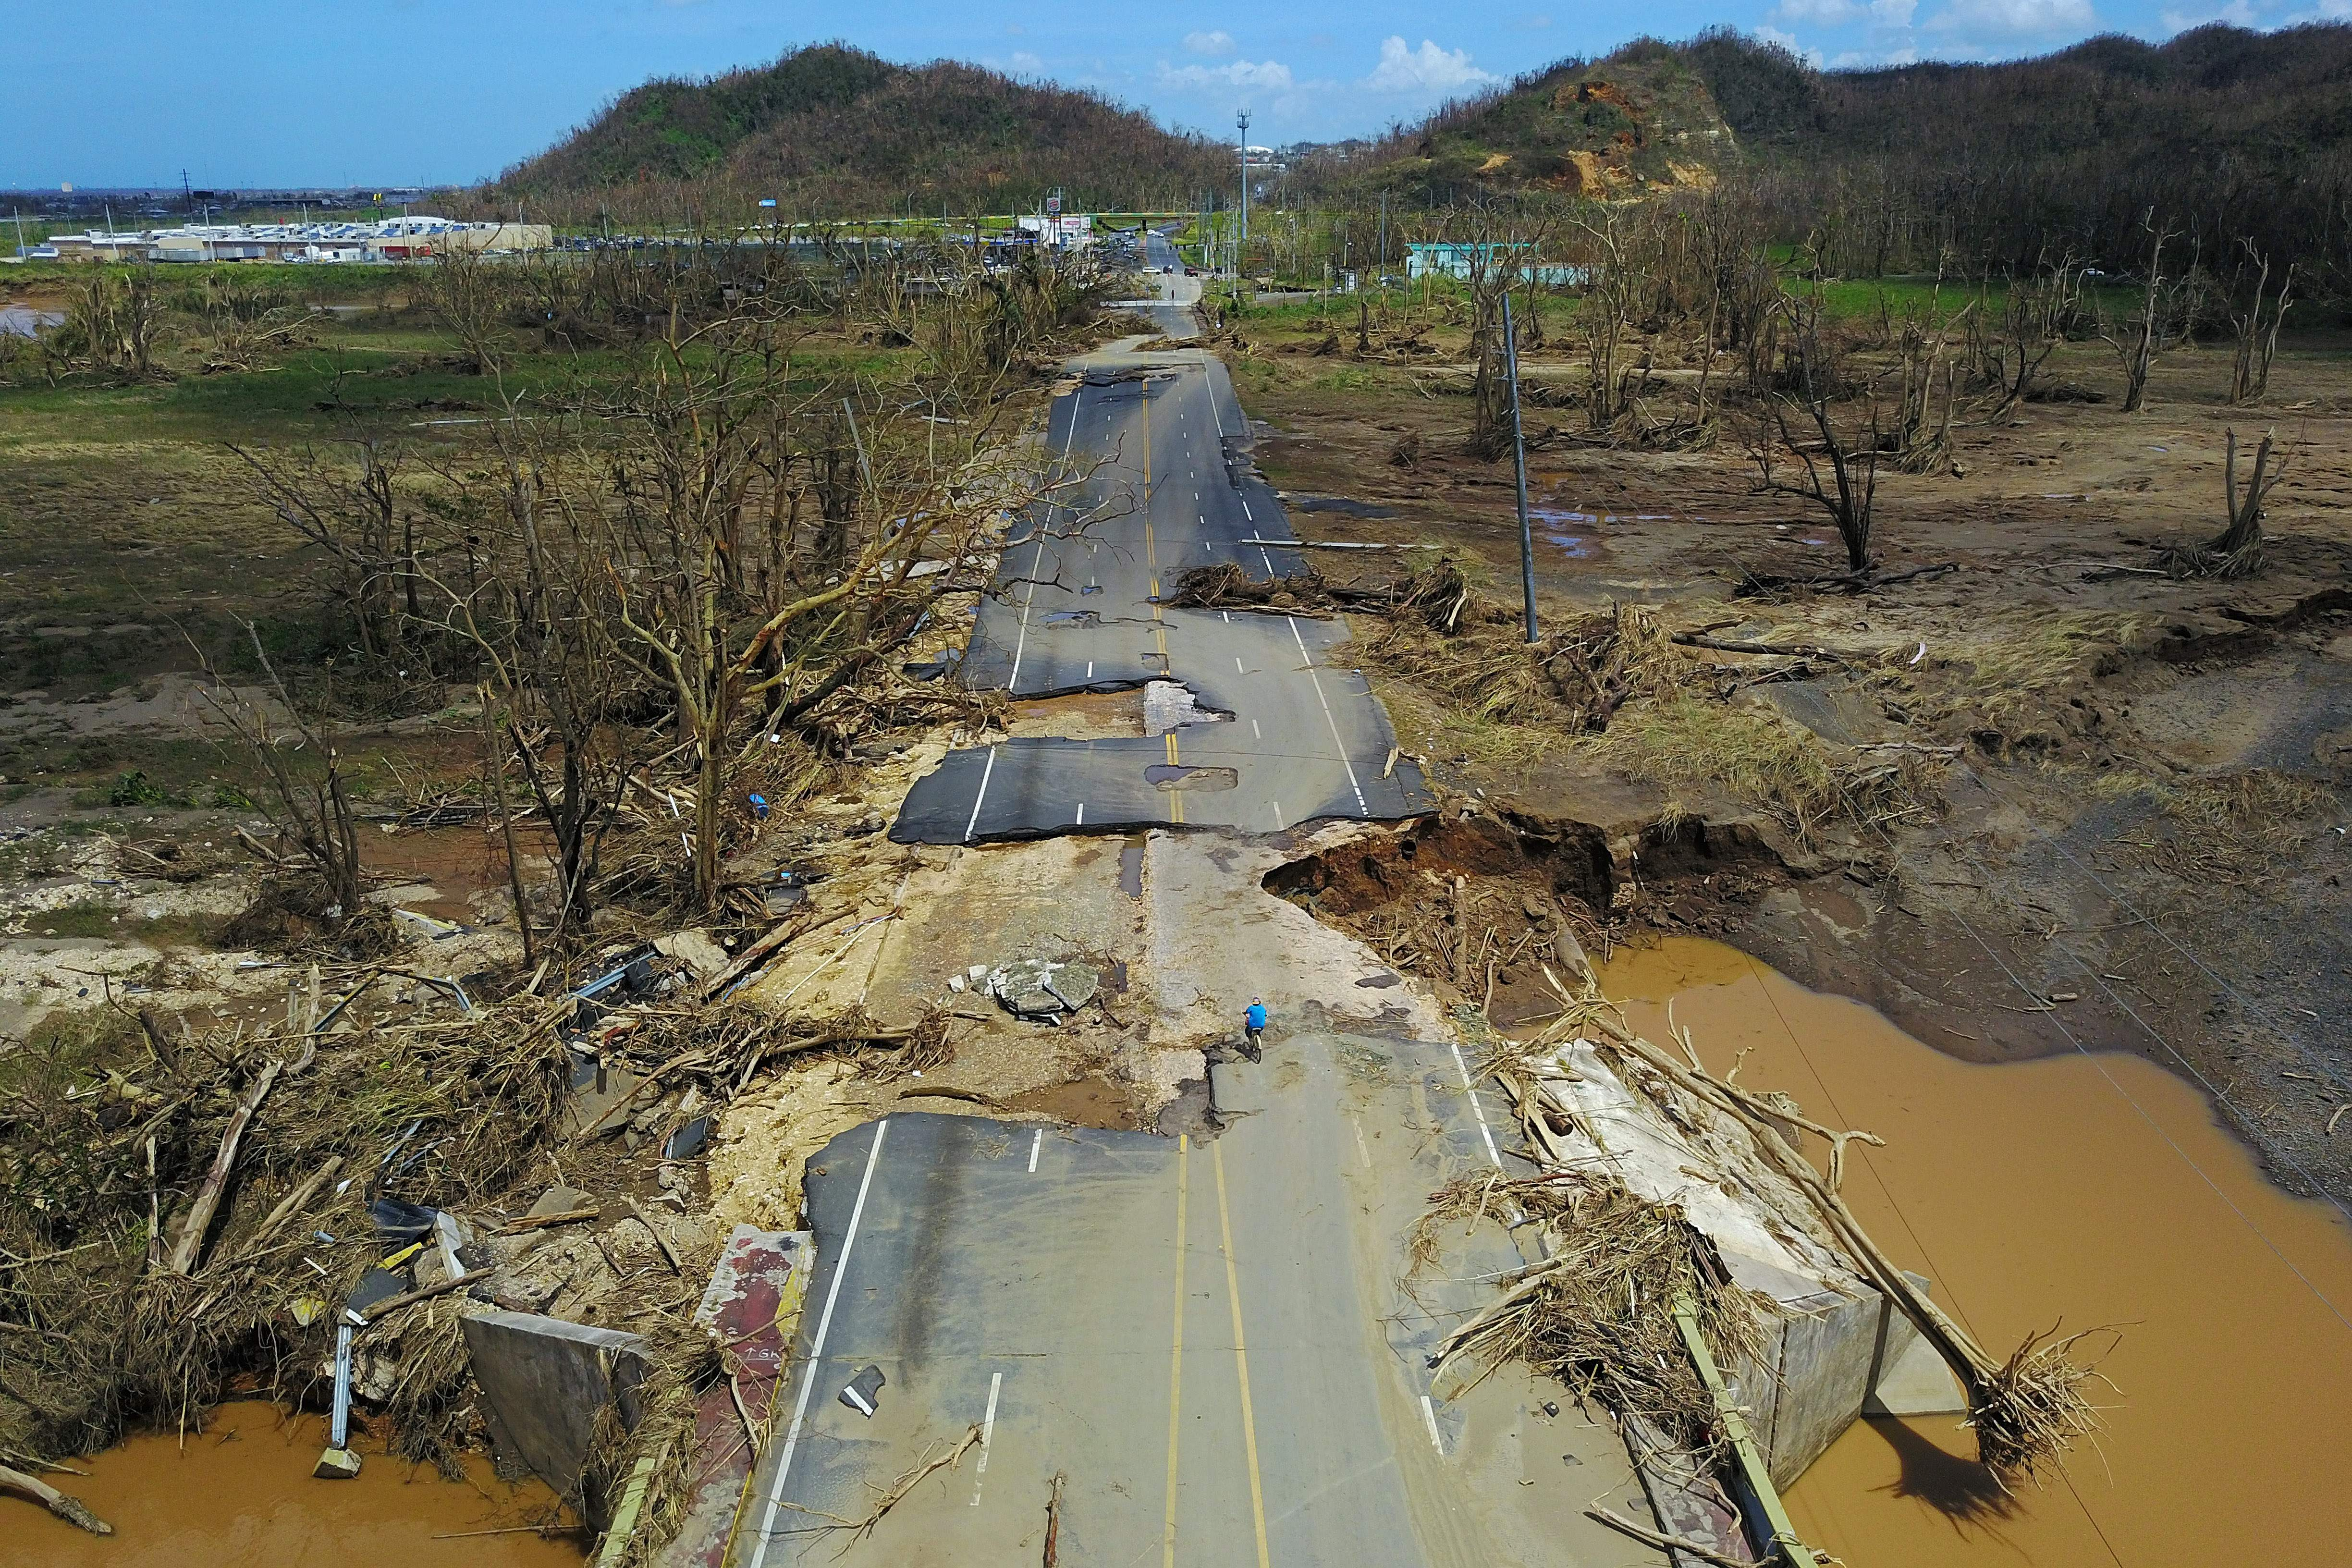 """""""Hysteria is starting to spread"""": Puerto Rico is devastated in the wake of Hurricane Maria"""